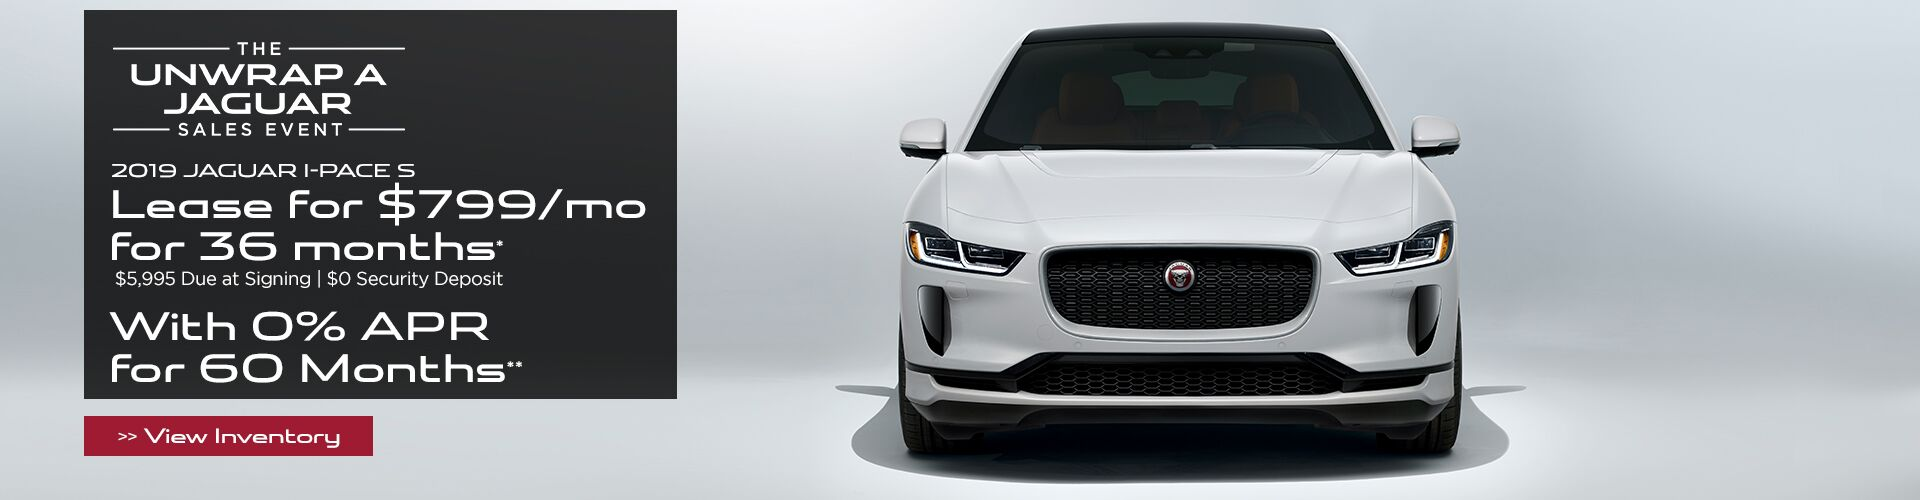 New 2019 Jaguar I-Pace in San Antonio TX, serving Boerne, San Marcos